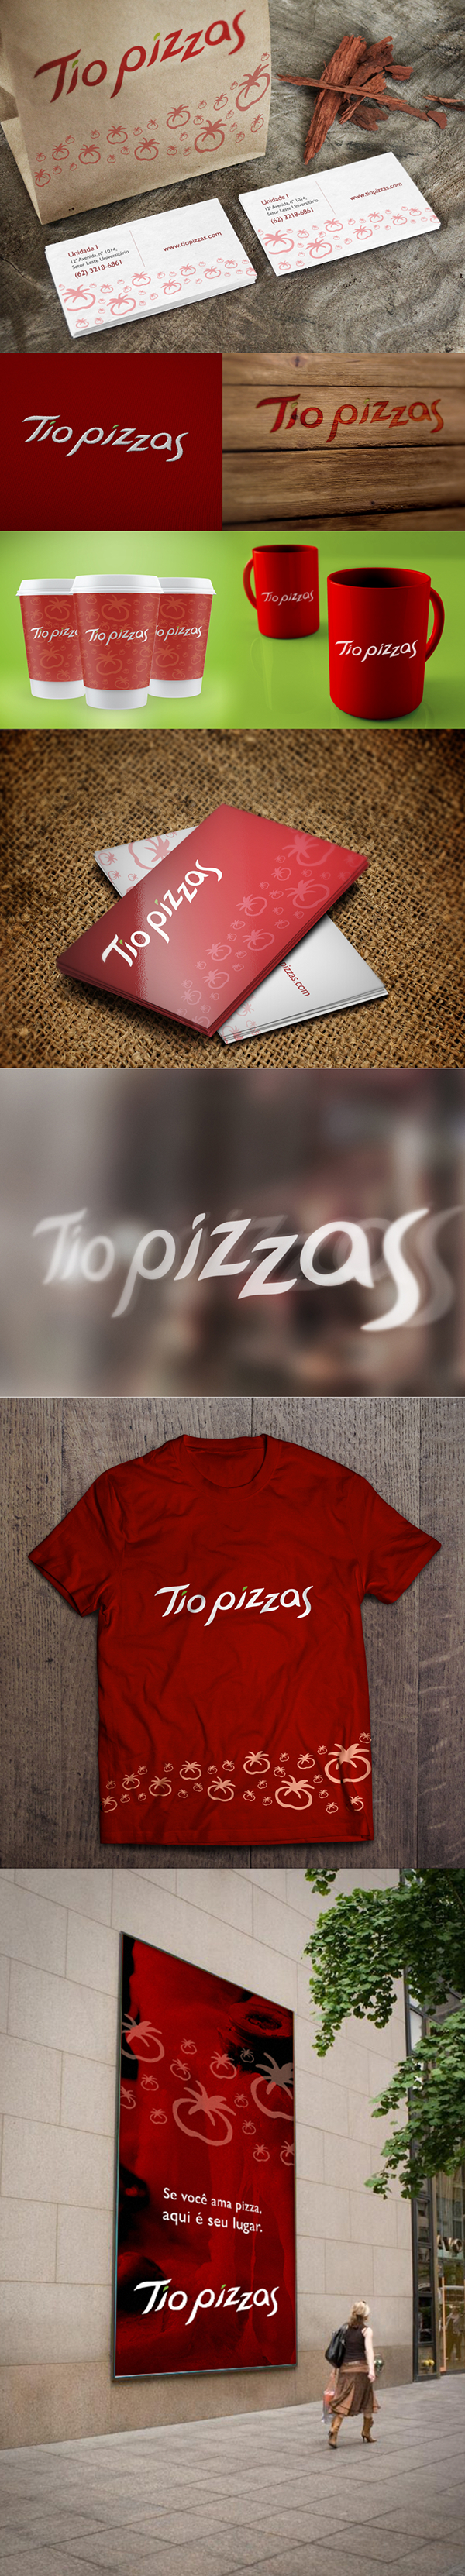 Redesign Tio Pizzas